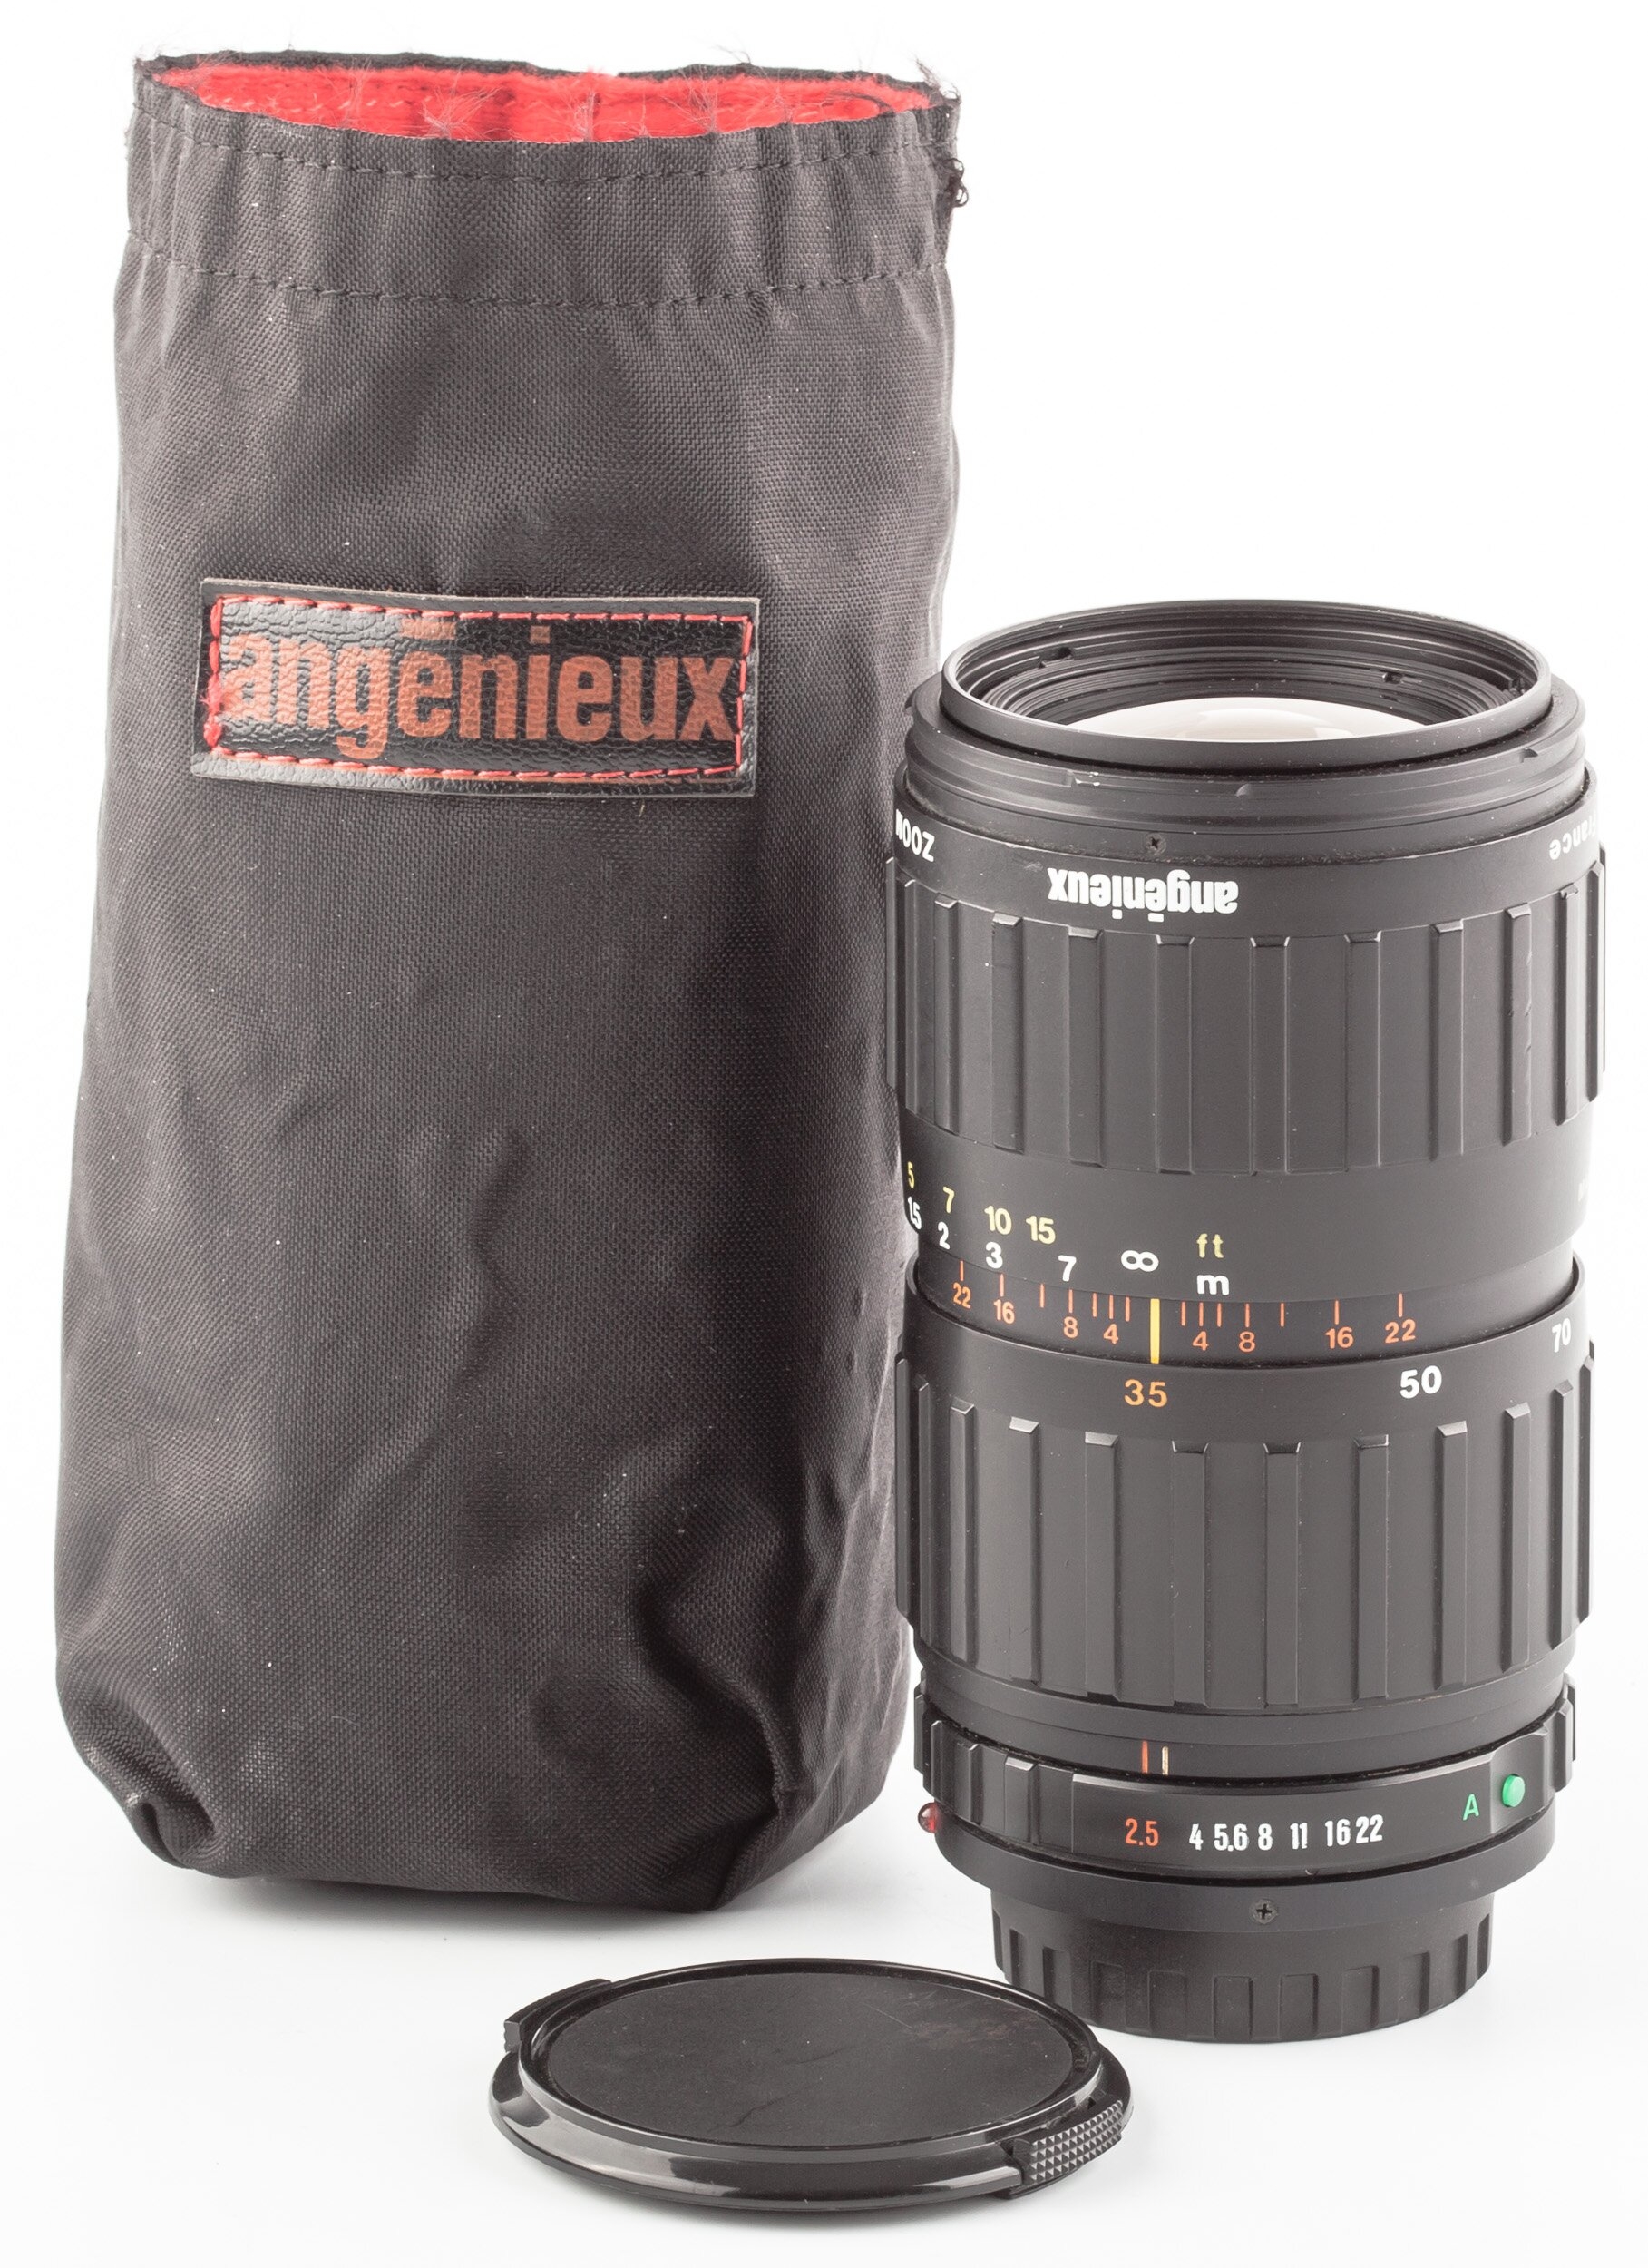 Angenieux Zoom 35-70mm 2,5-3,3  2x35 Canon FD